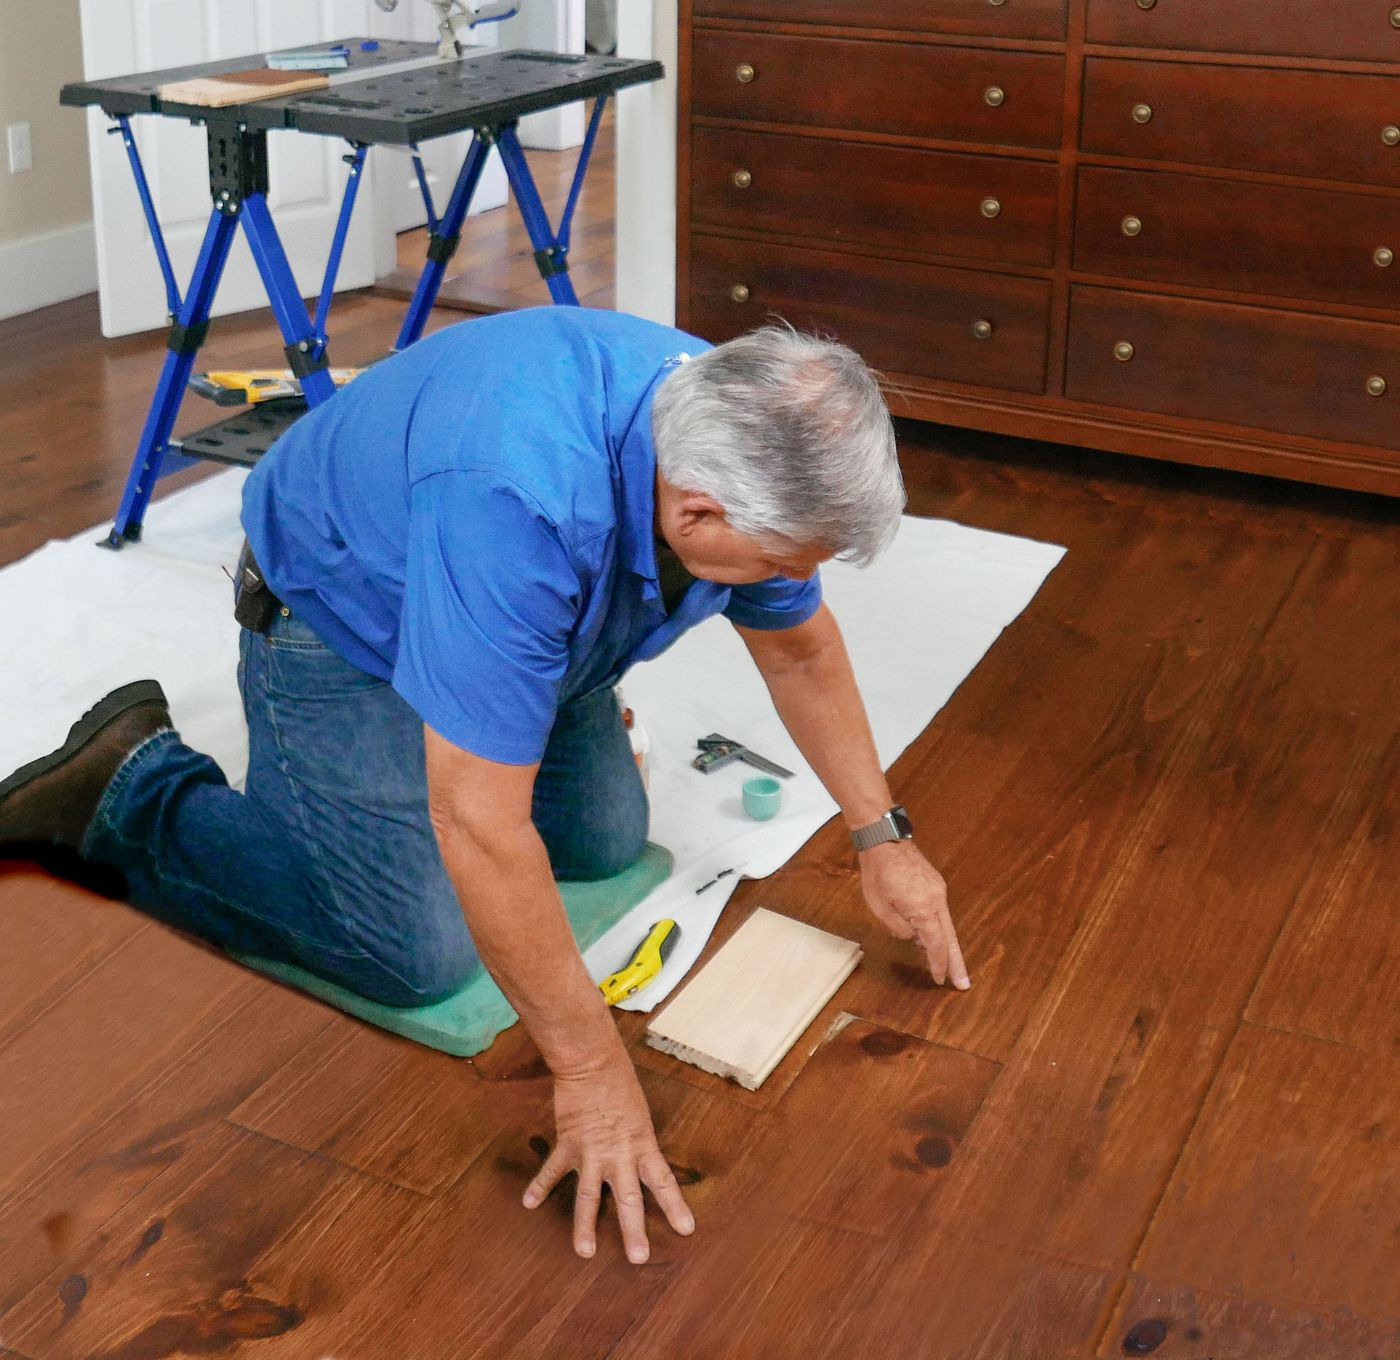 How To Fix Chipped Wood Floor In 9 Steps This Old House